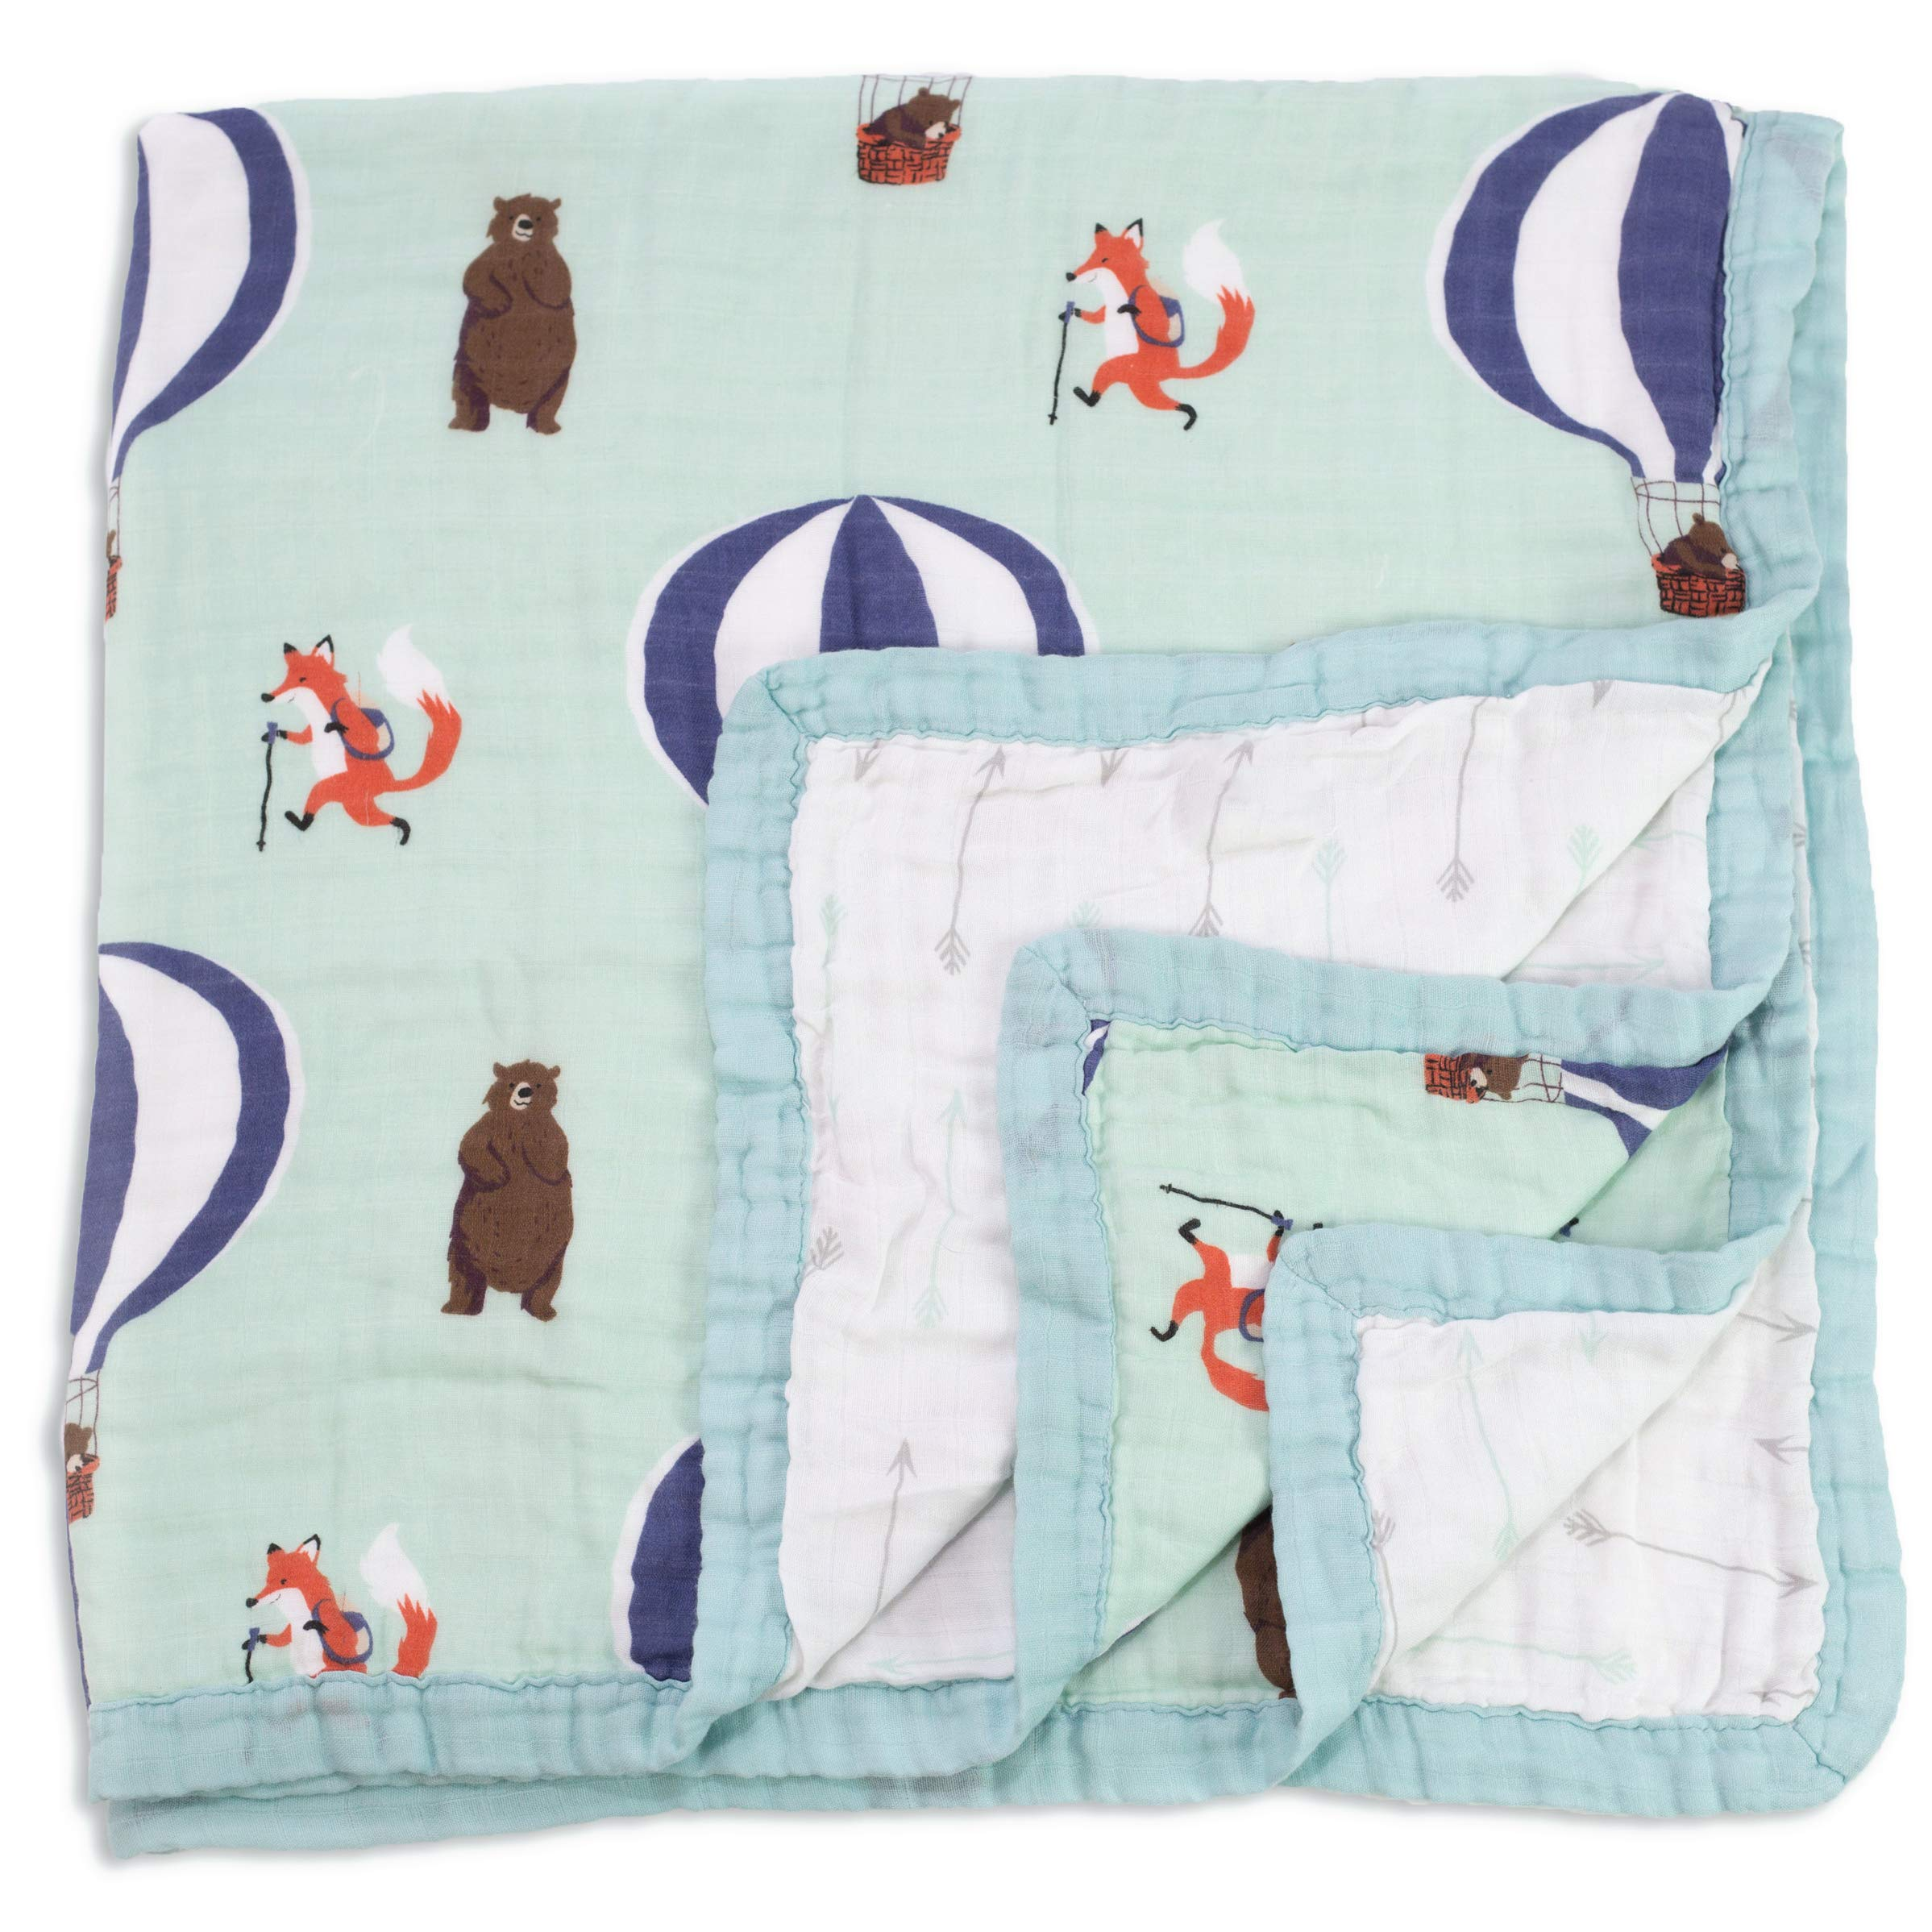 Baby & Toddler Blanket - Boy & Girl. Muslin Cotton Bamboo. Large, Soft & Warm, Breathable & Lightweight. Cozy Dream & Snuggle Blanket. Preschool Nap Security Crib & Bed Blanket (Fox & Bear)